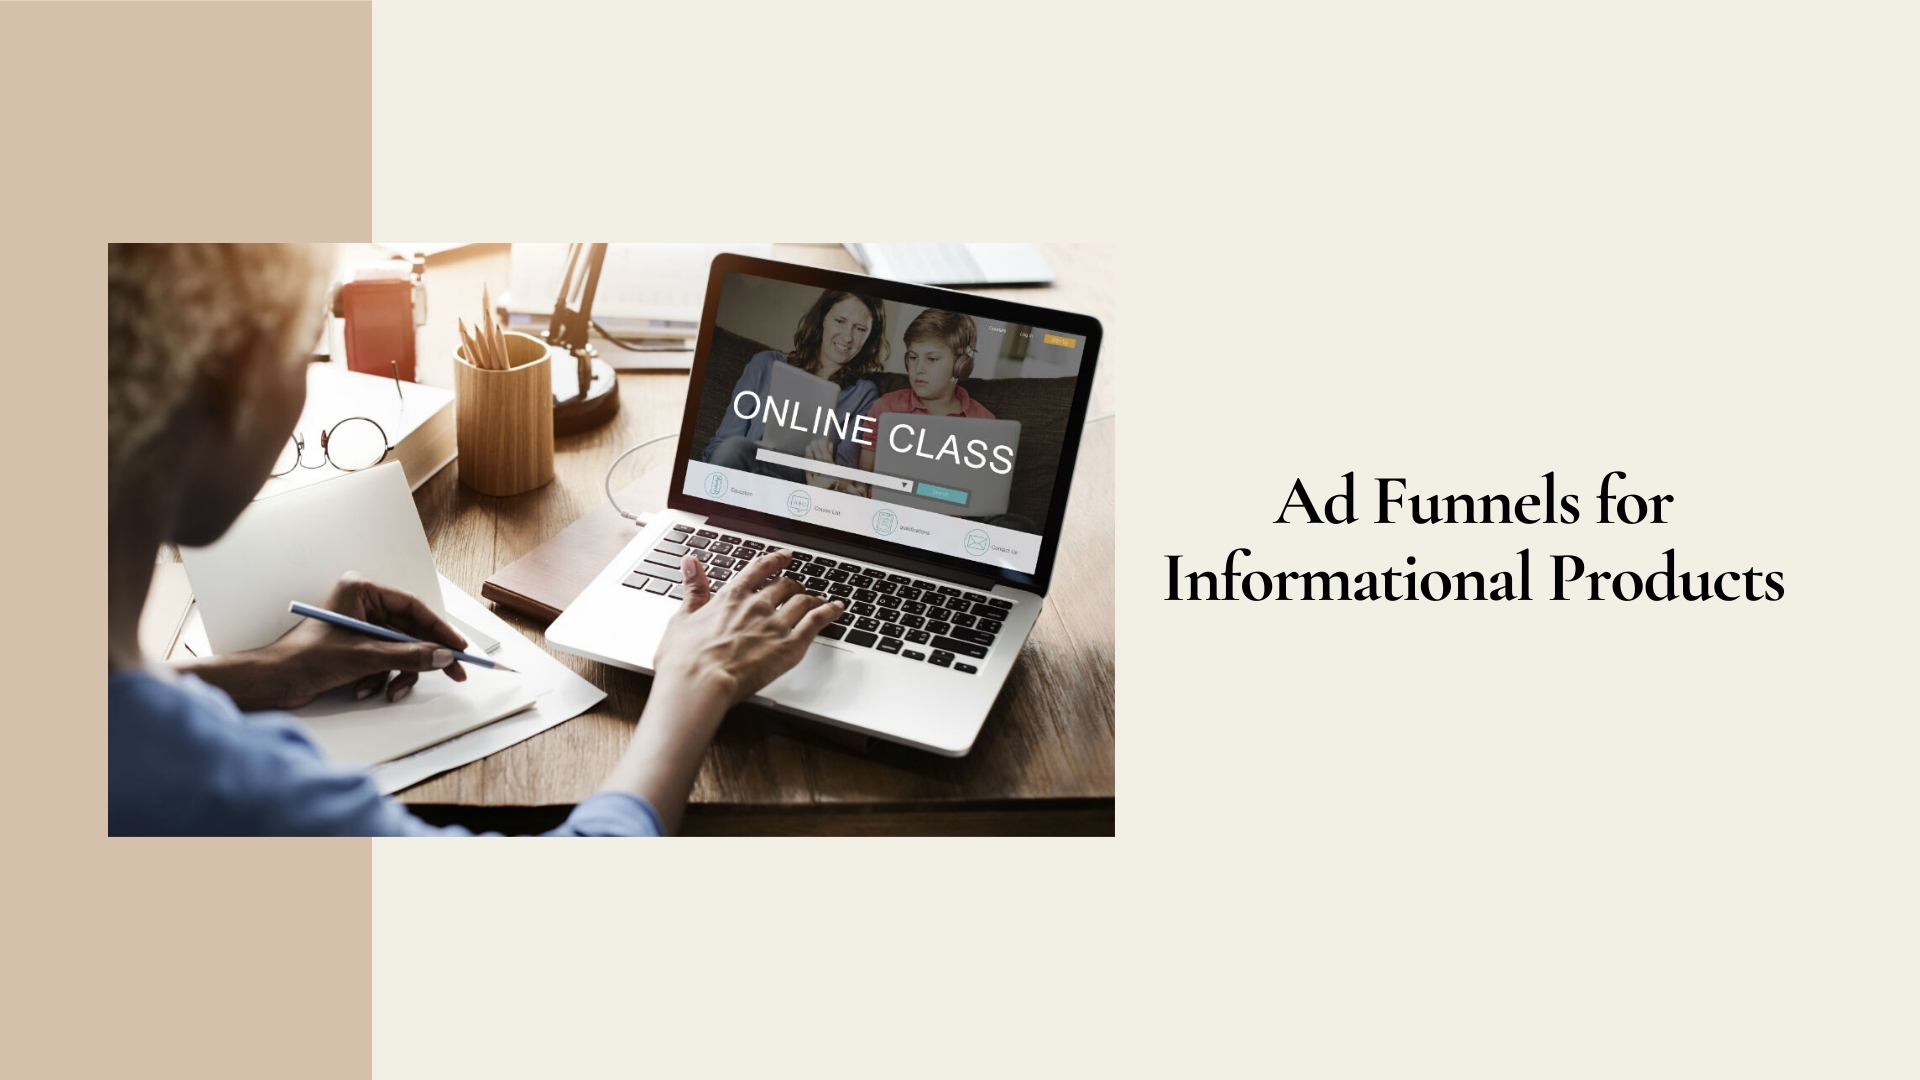 Ad Funnels for Informational Products